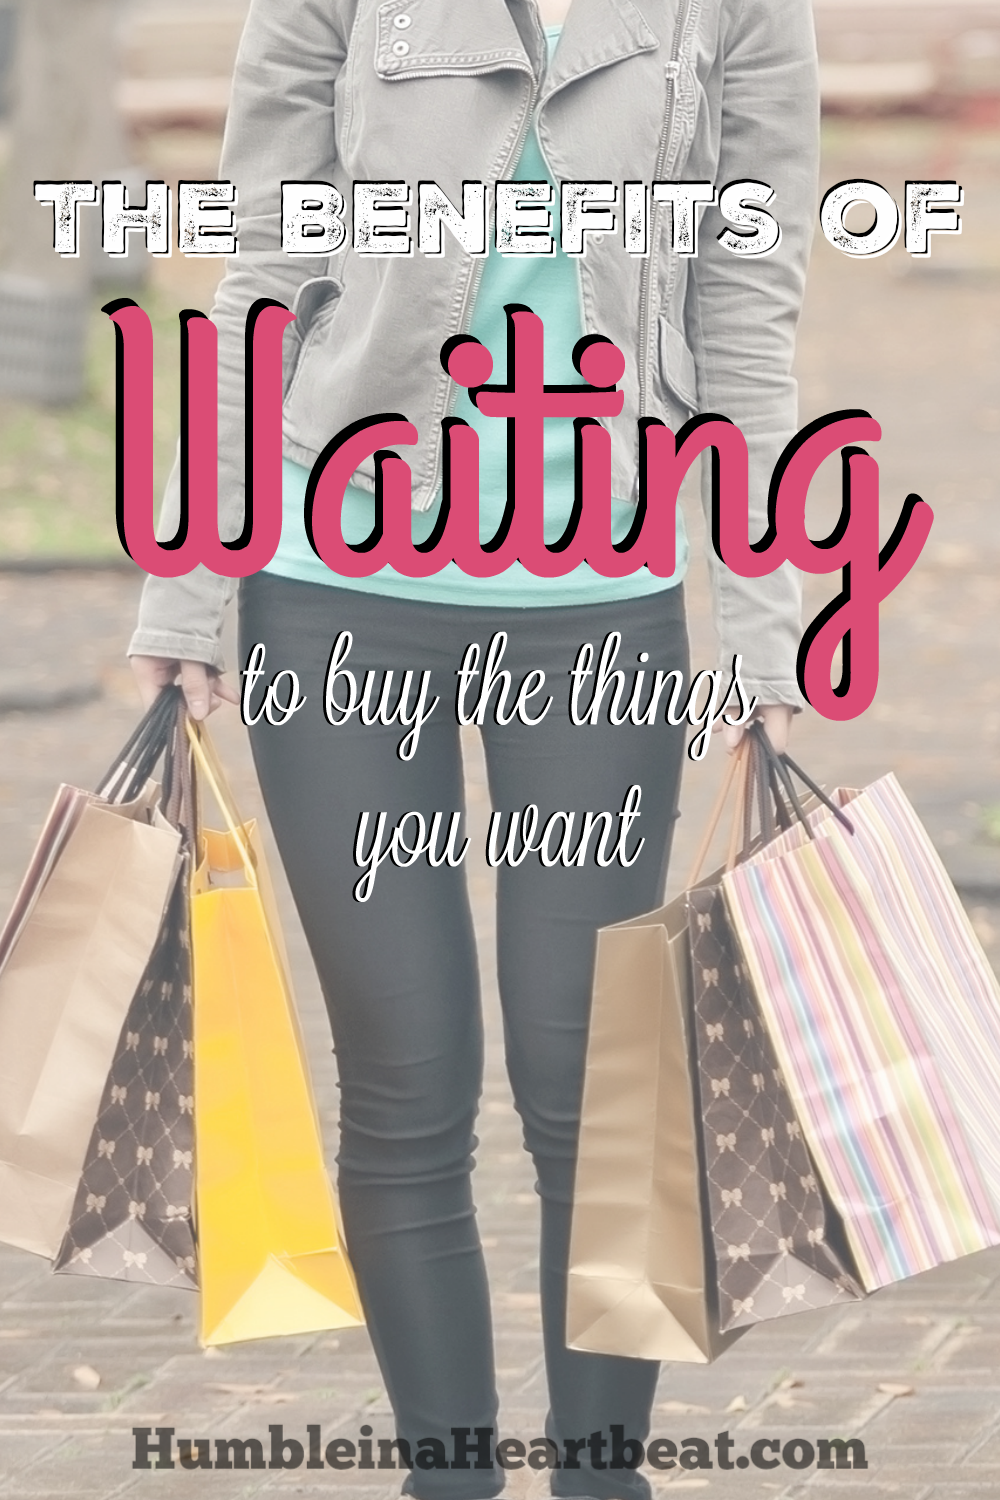 Delayed gratification actually has some wonderful benefits. The next time you want to buy something, try waiting for some time before getting it. You might be surprised how much willpower you have!